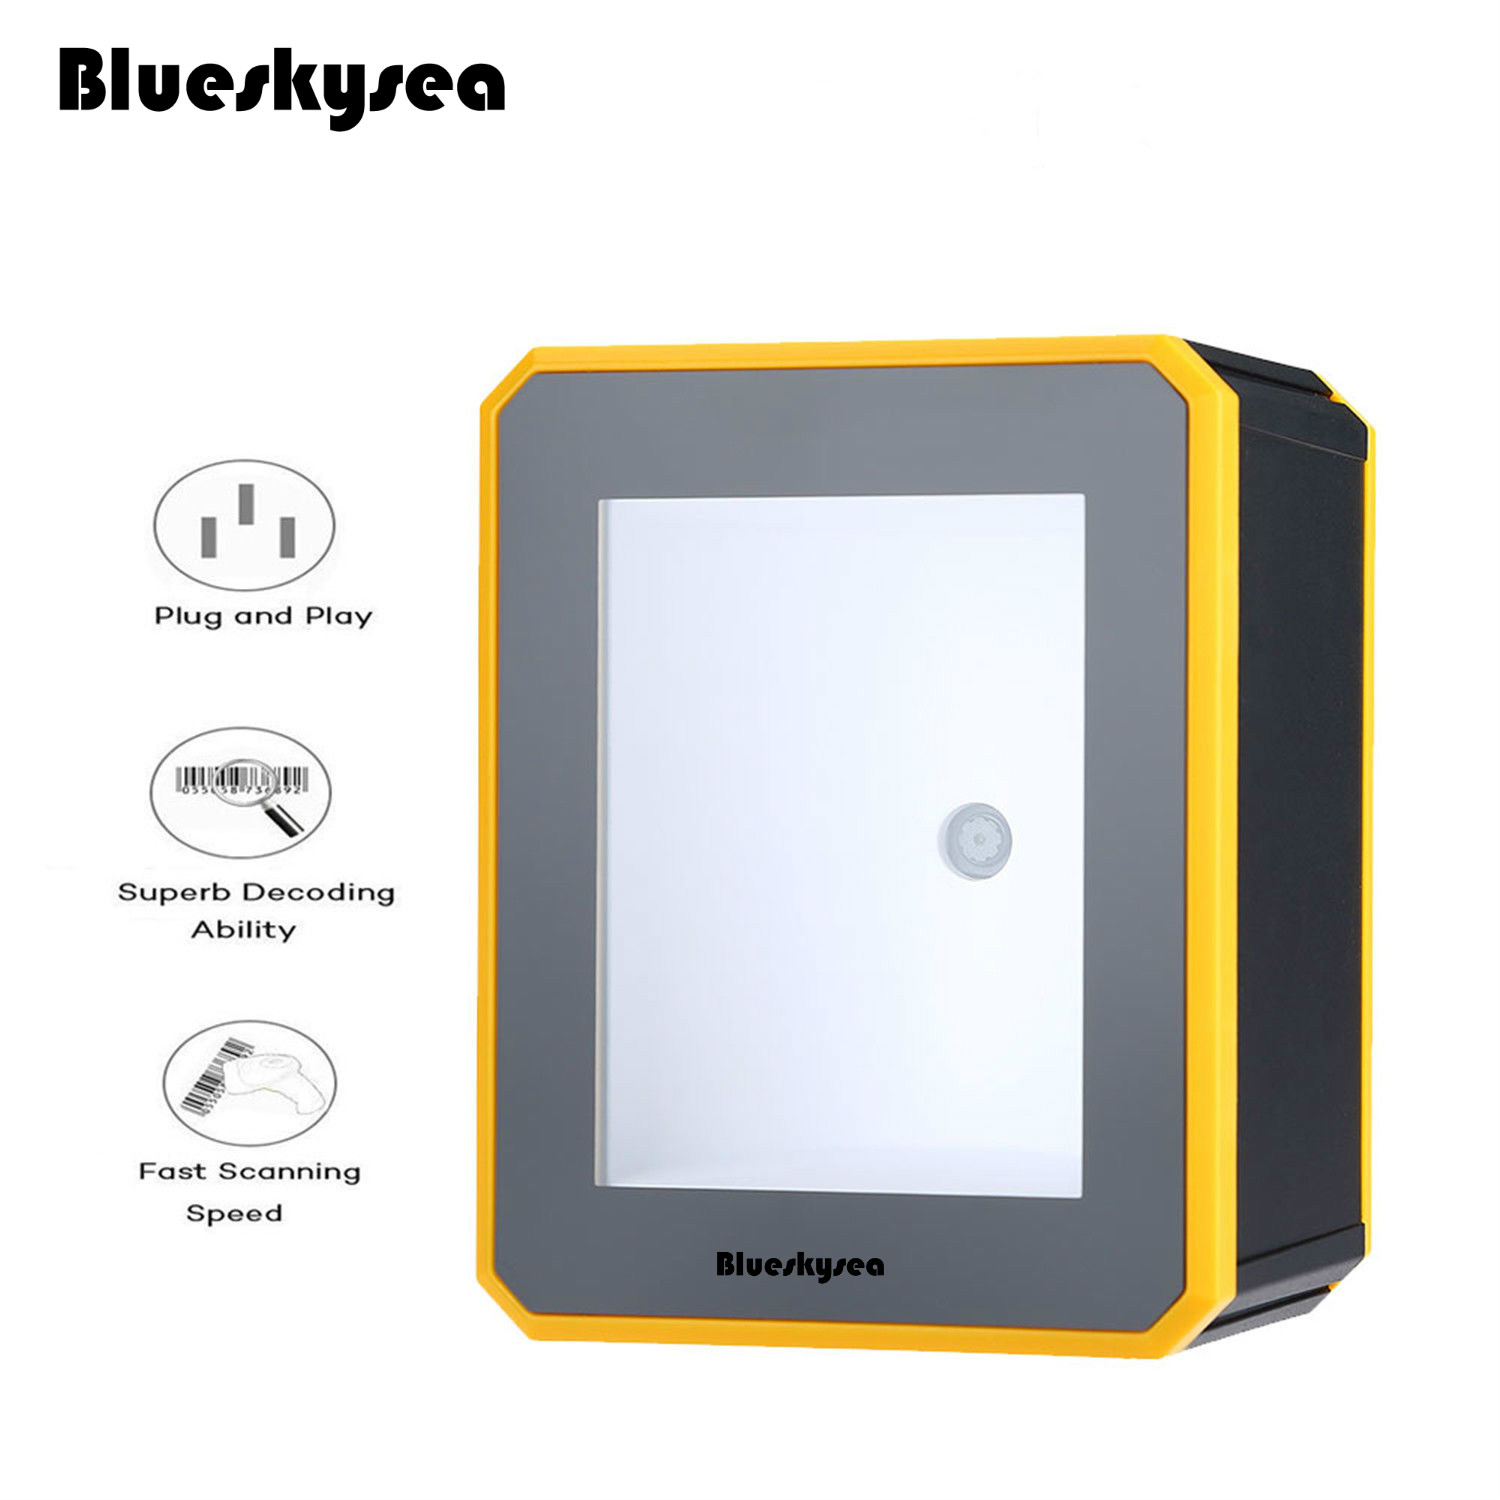 Blueskysea YK-MP2600 1D/2D Platform Barcode Scanner USB Wired Desktop 2D QR Code Reader Omnidirectional 2D QR PDF417 Scanner zebra ds2208 sr handheld 2d omnidirectional barcode scanner imager 1d 2d and pdf417 with usb cable